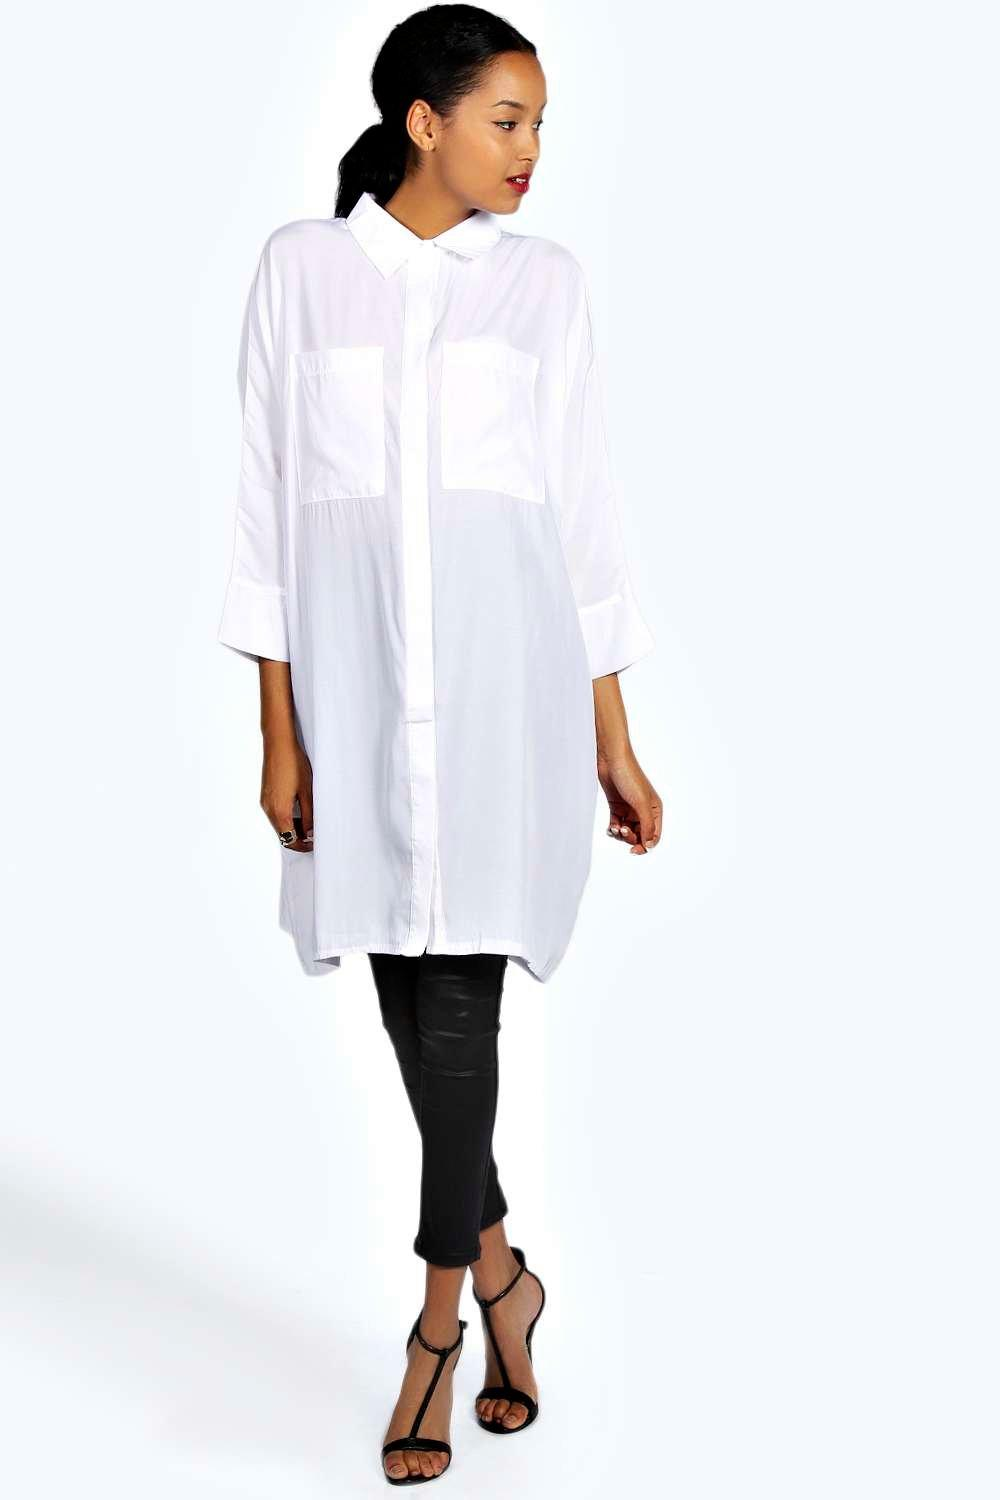 Oversized womens shirts artee shirt for Baseball button up t shirt dress